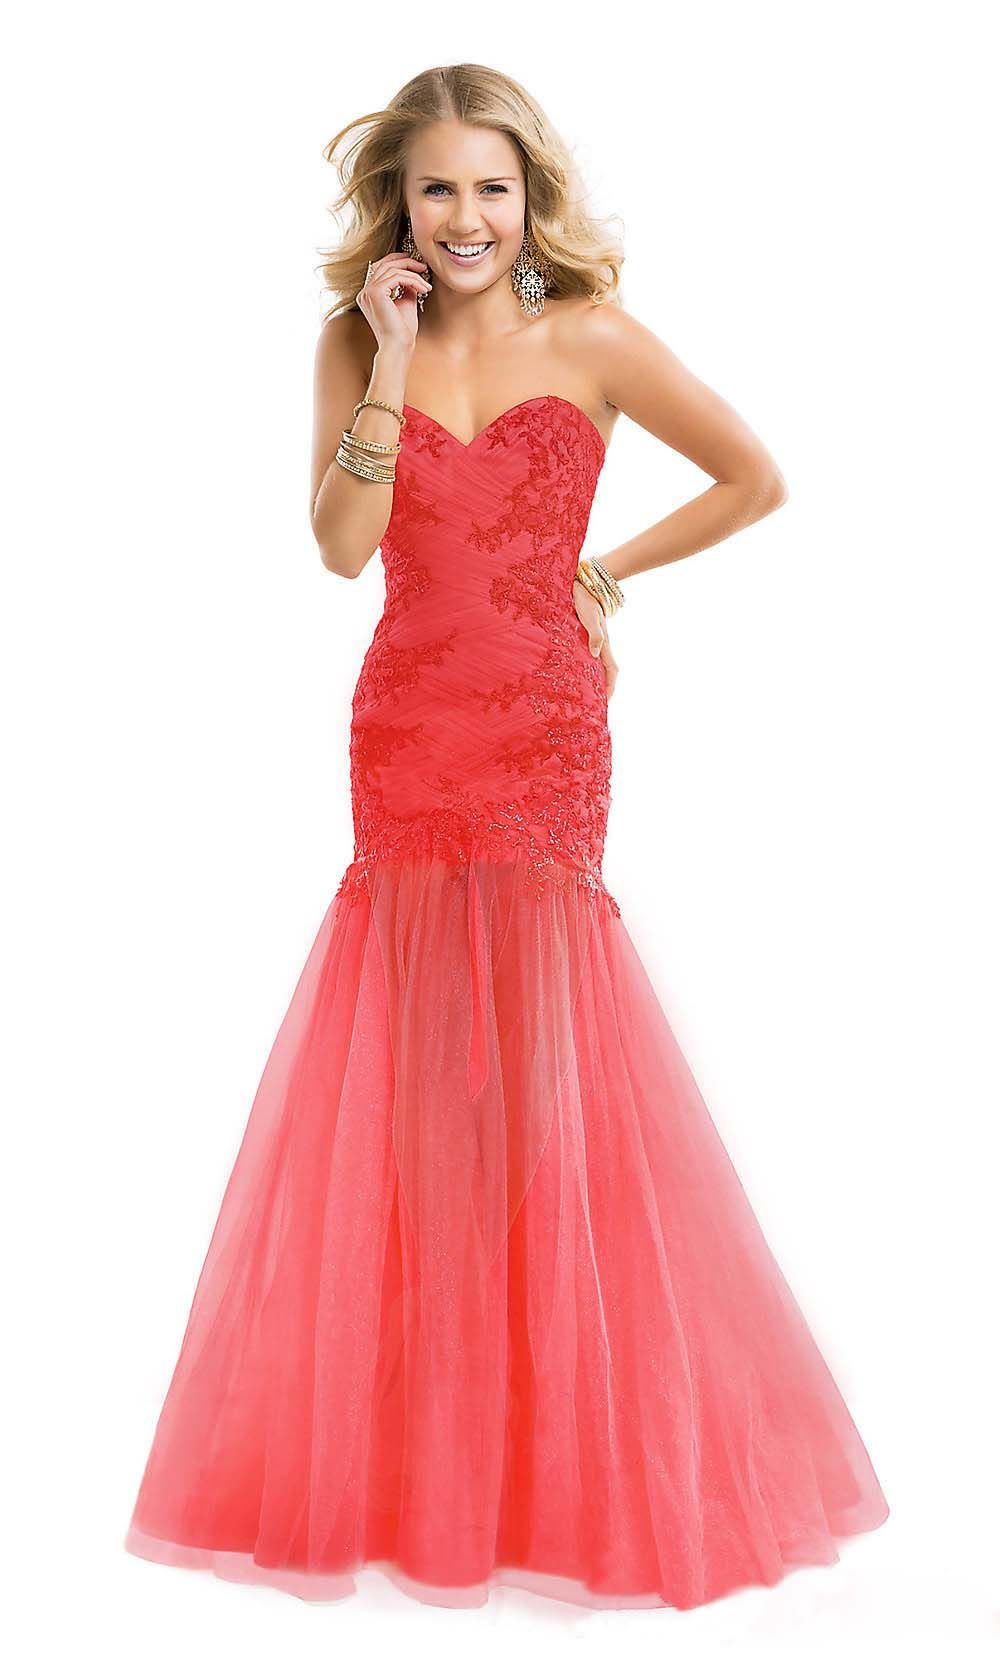 Mermaid prom dress affordable prom dress unique prom dresses long